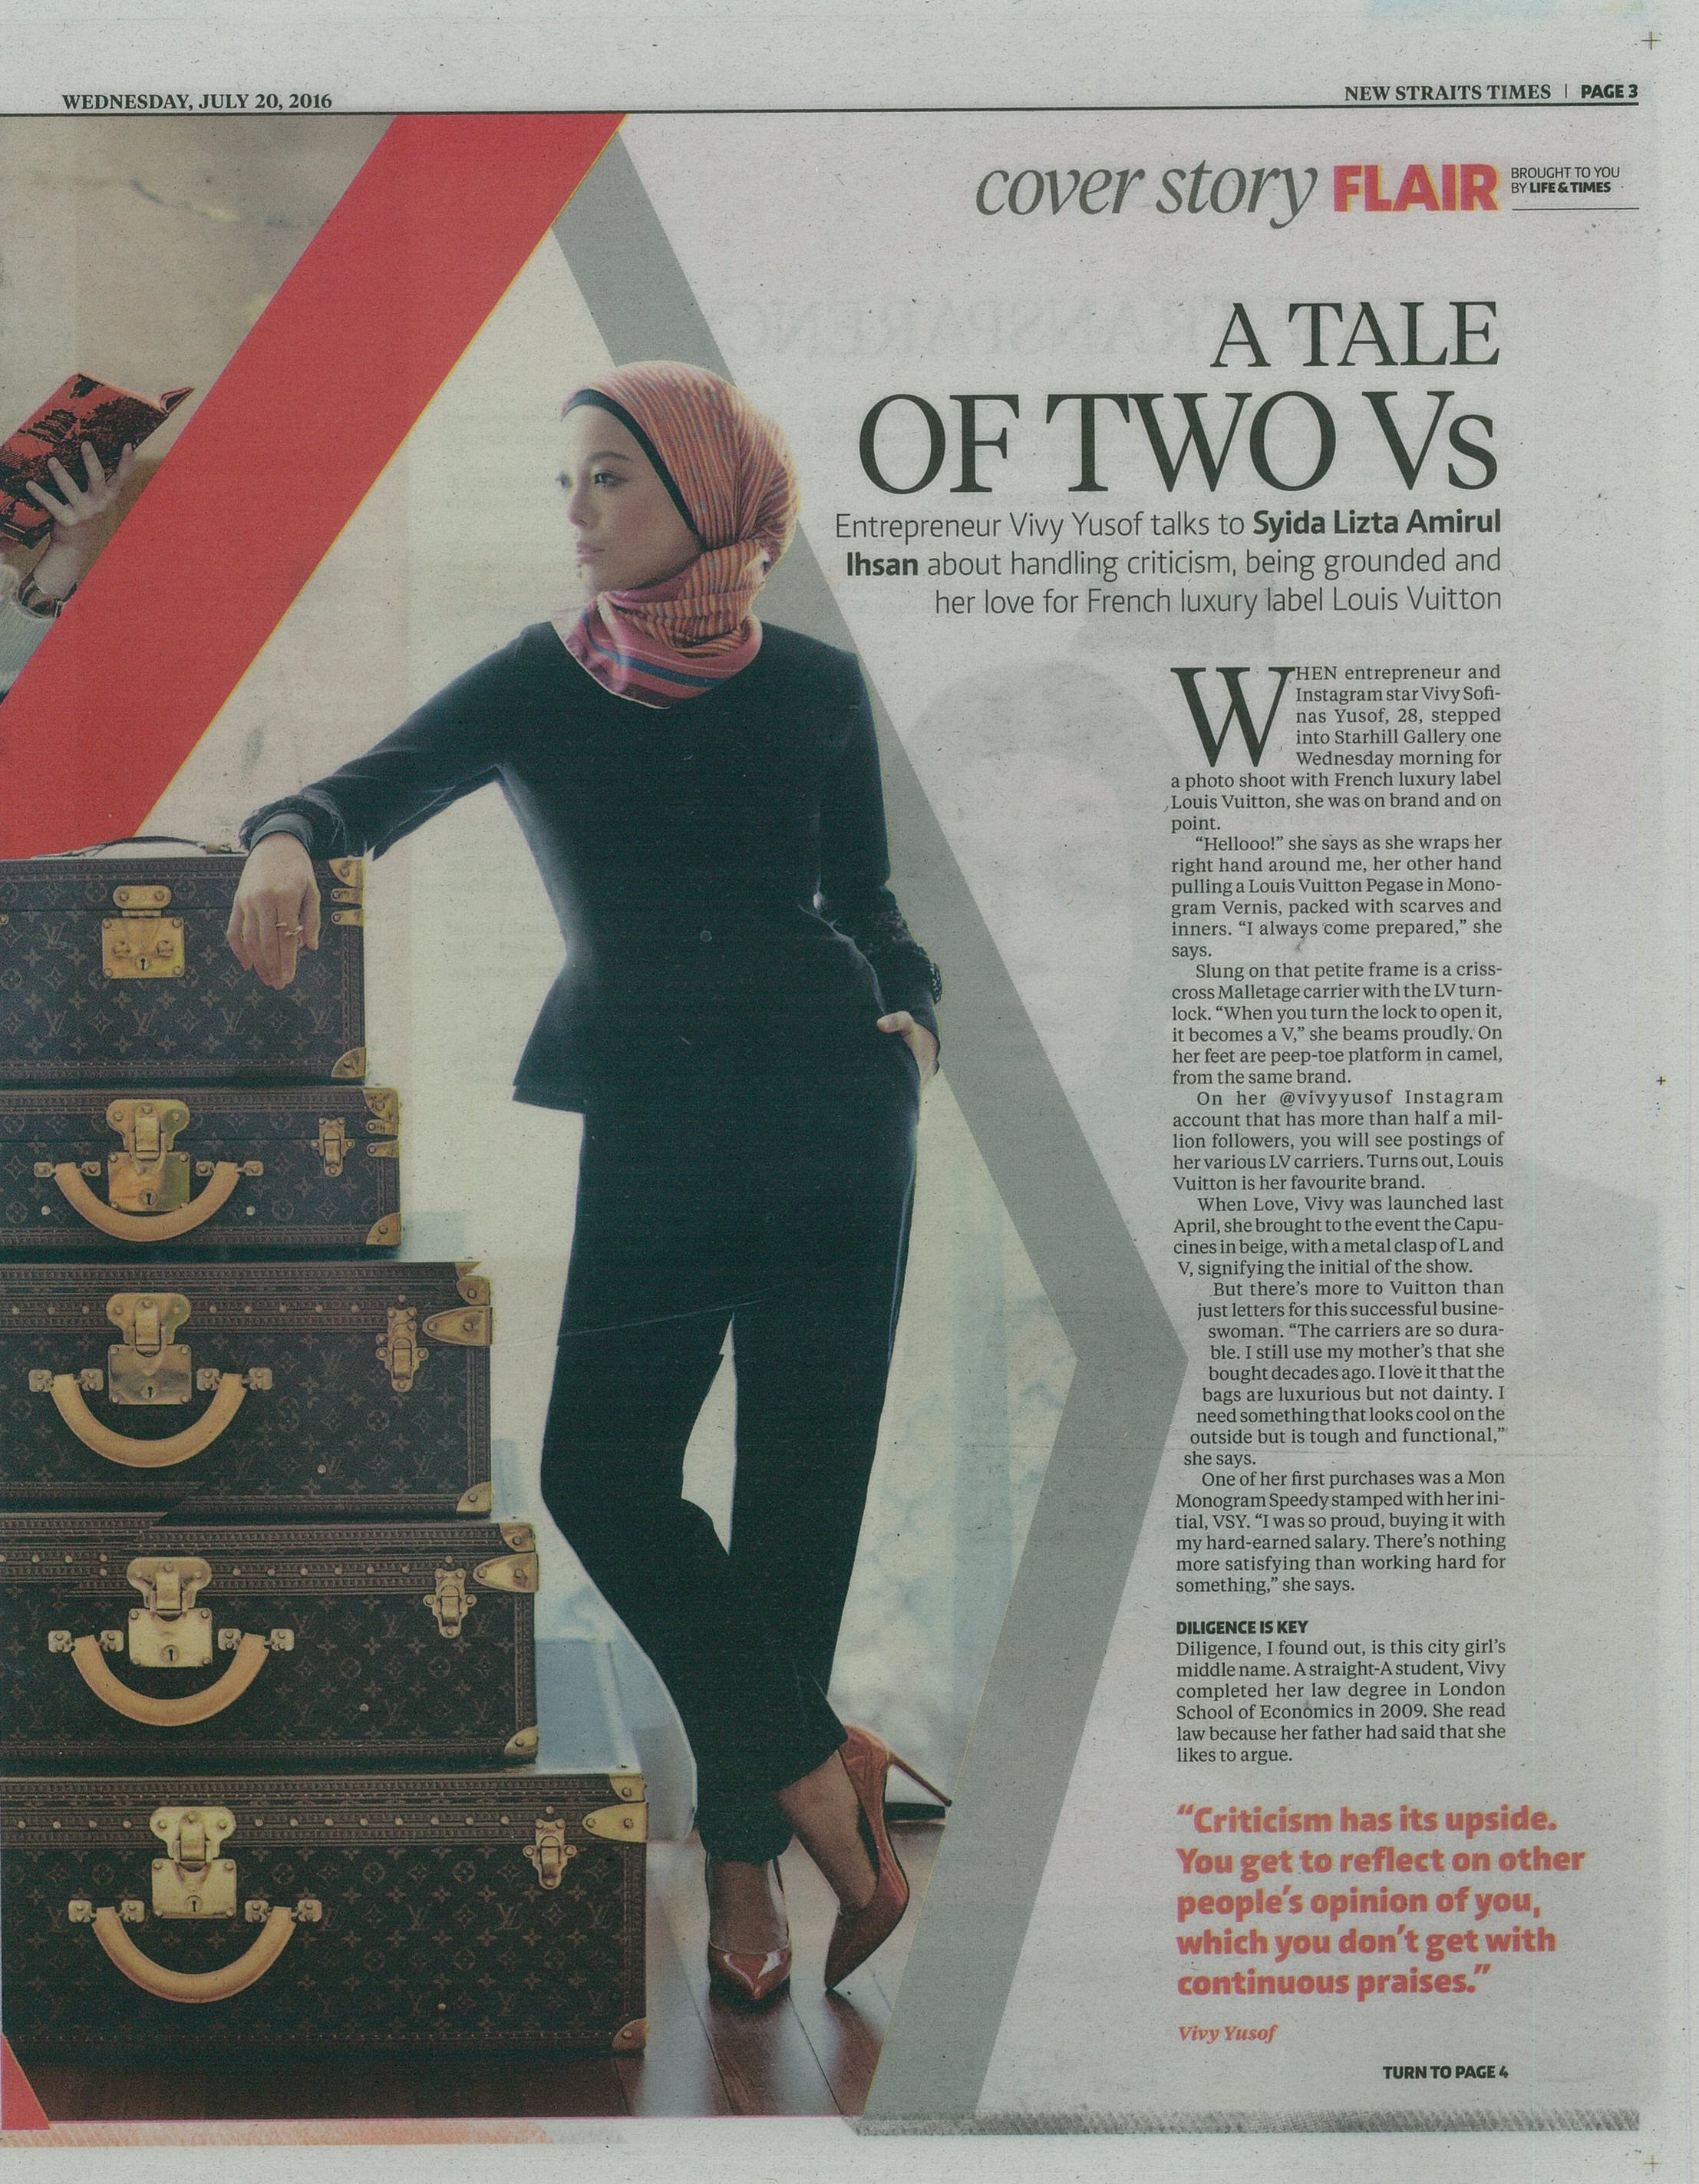 The New Straits Times - July